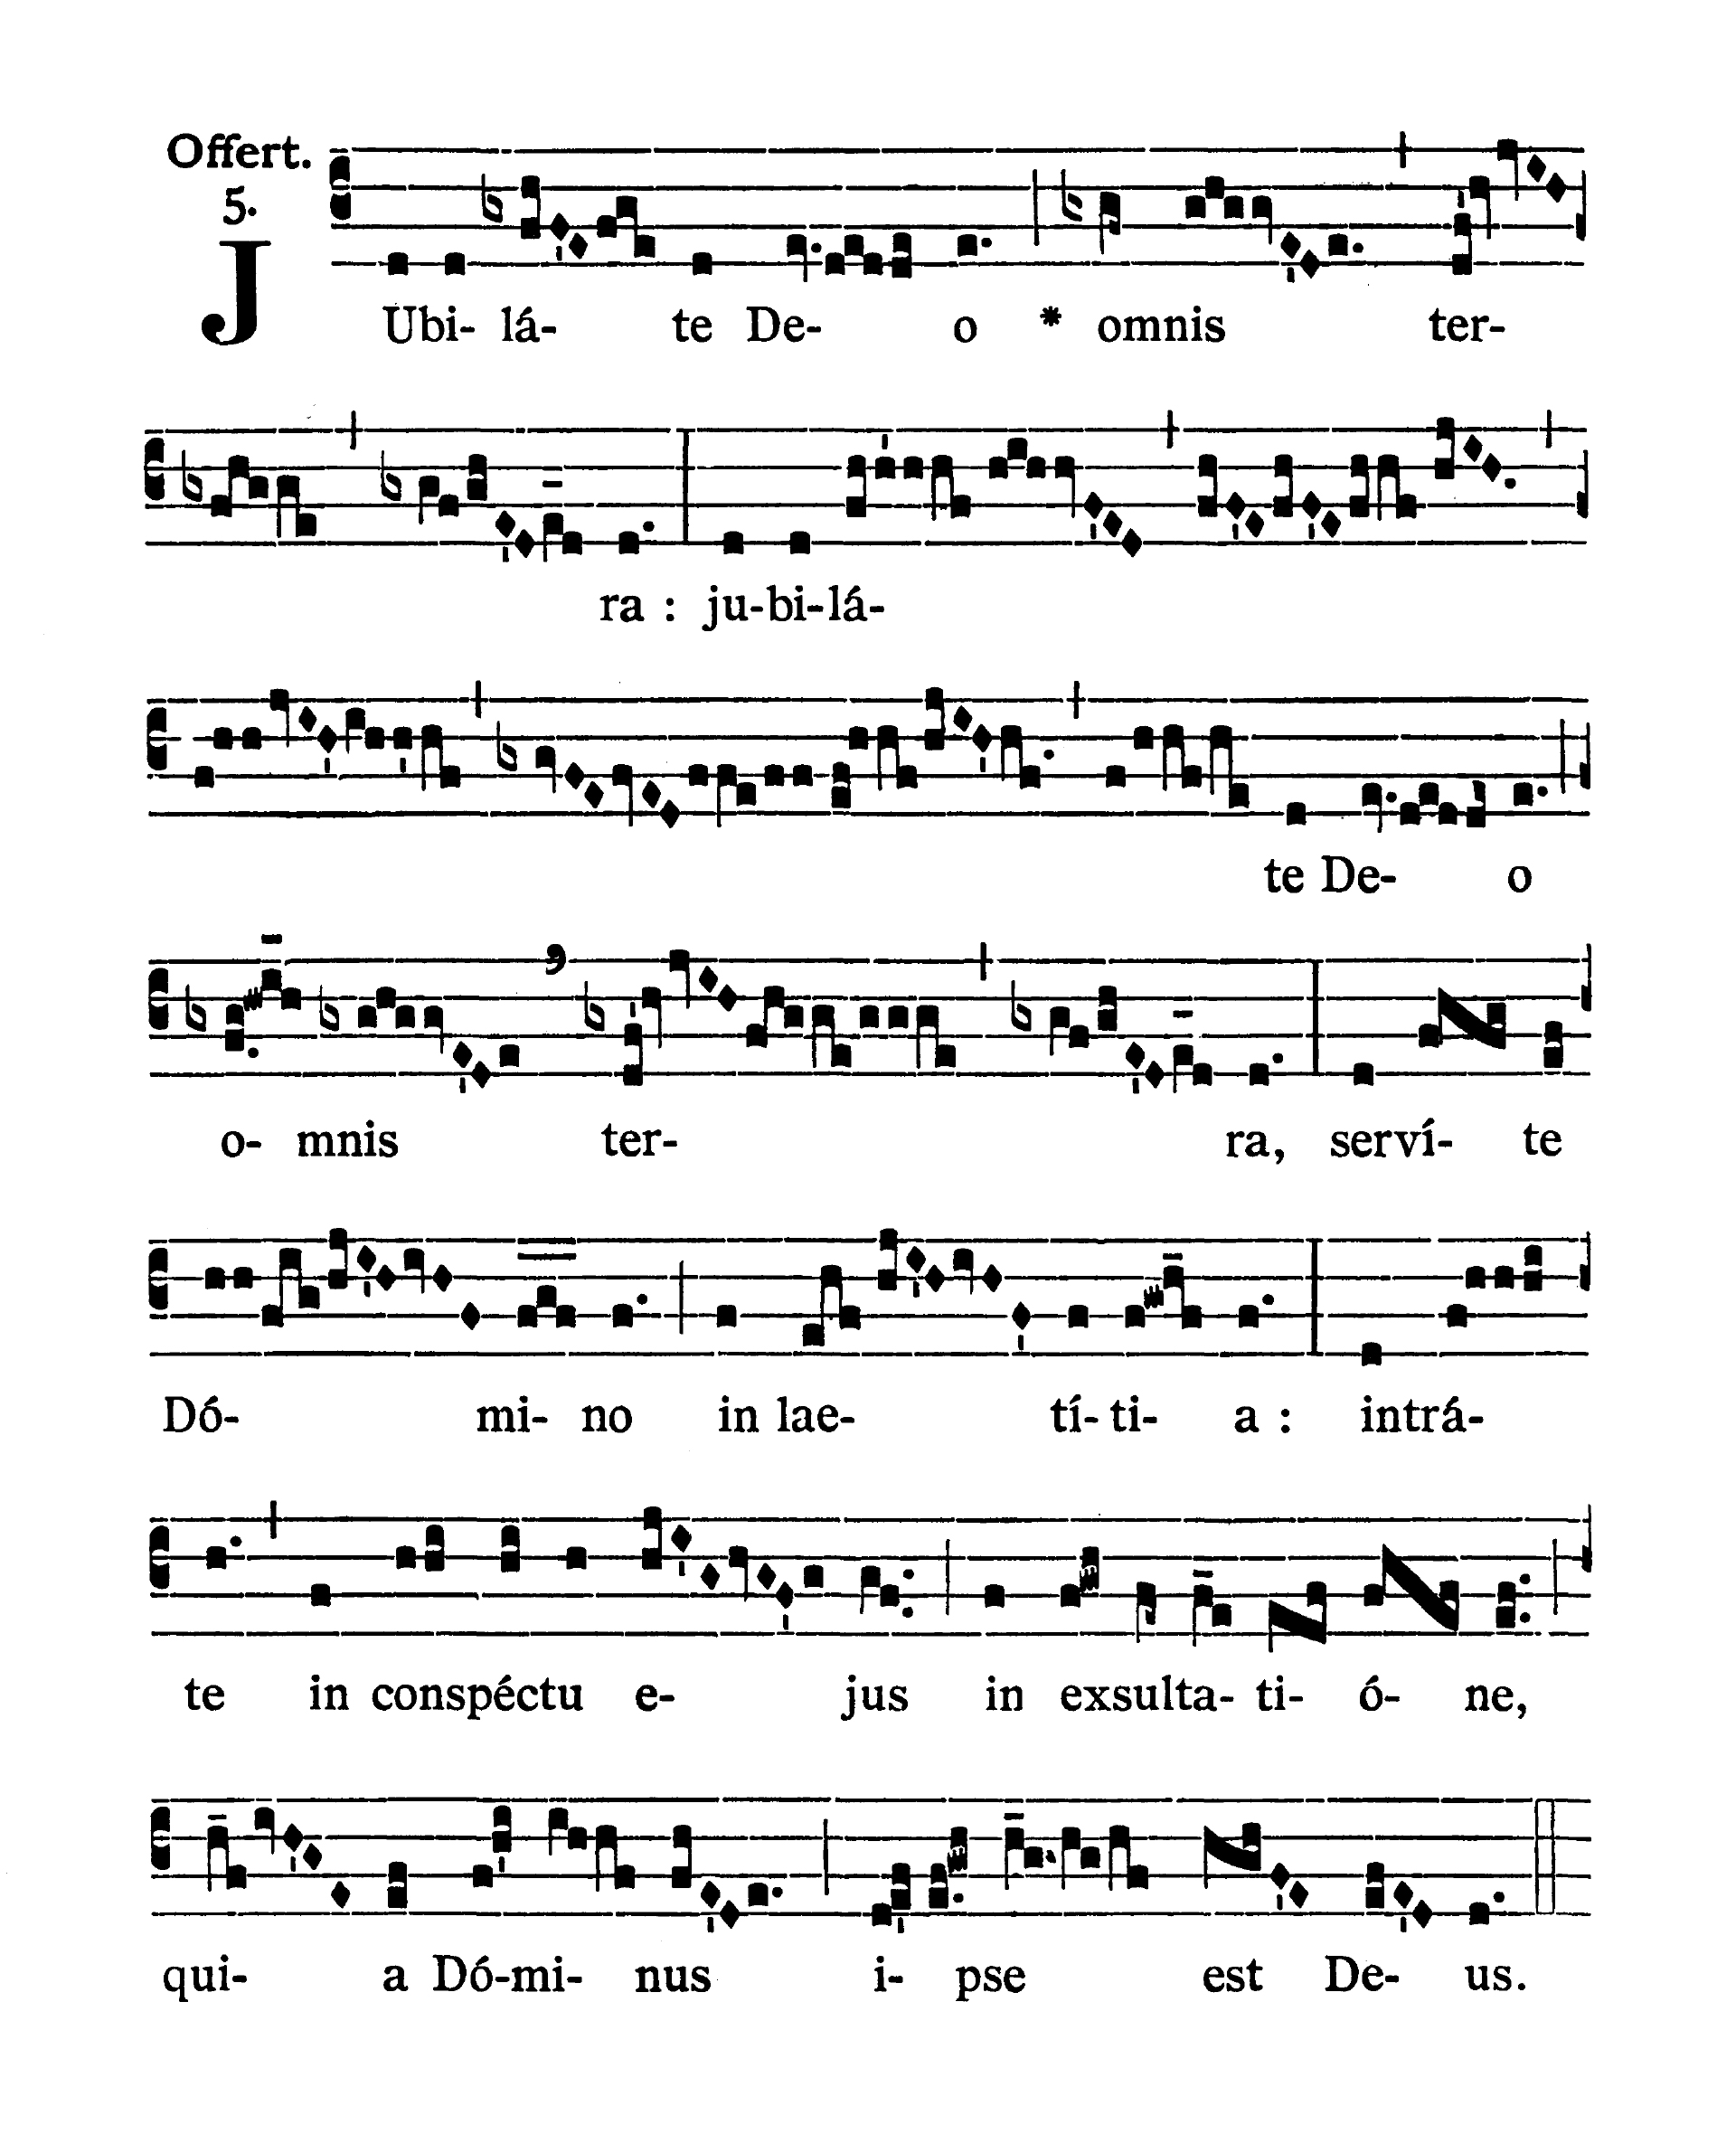 Missa Dominicae I post Epiphaniam (Mass of I Sunday after Epiphany) - Offertorium (Jubilate Deo)